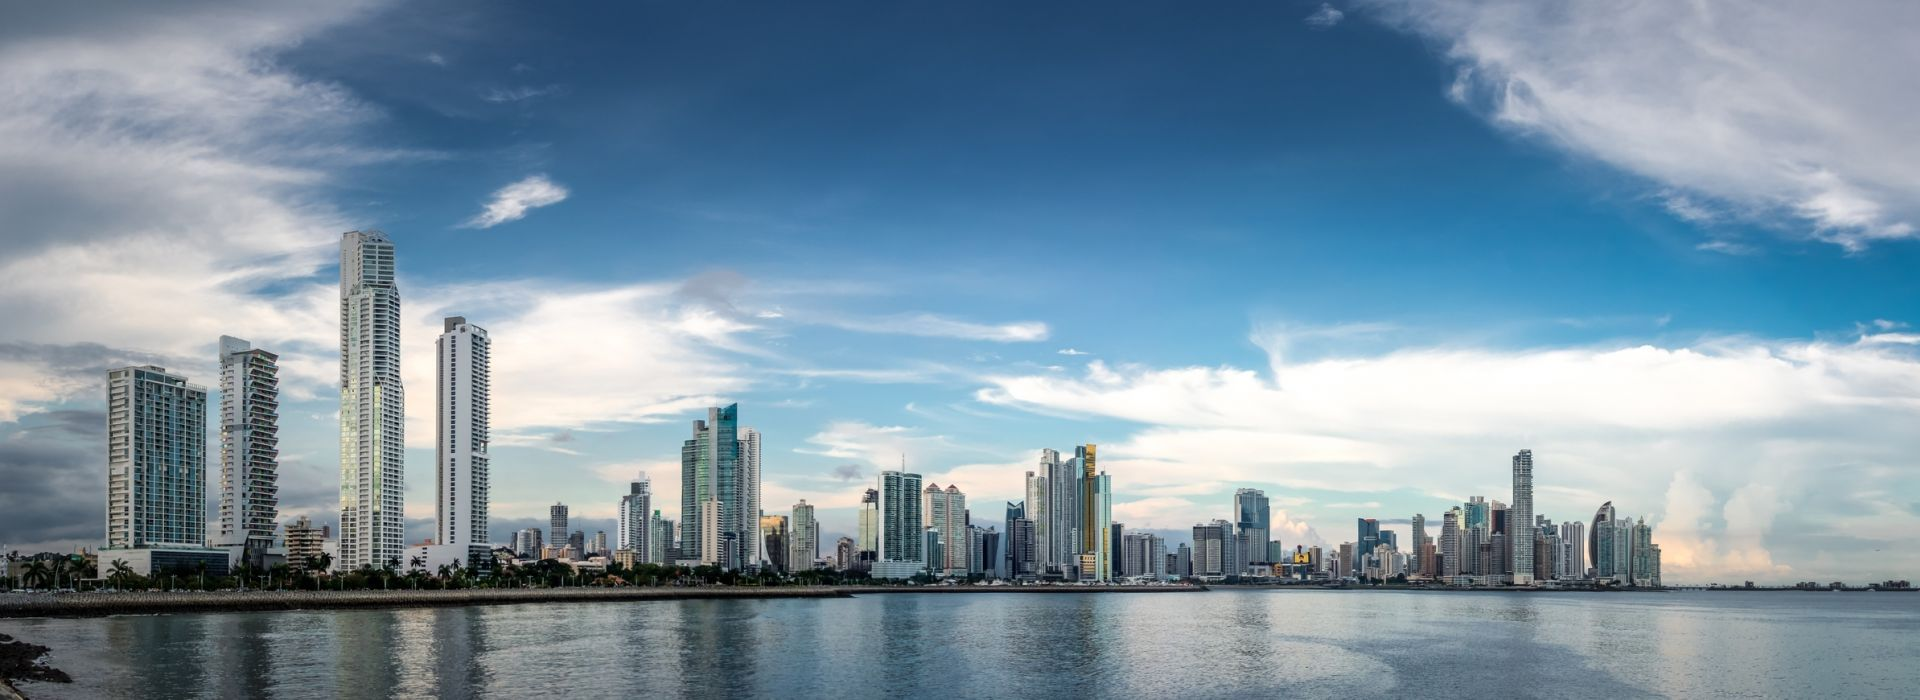 Panama tours and trips to Panama